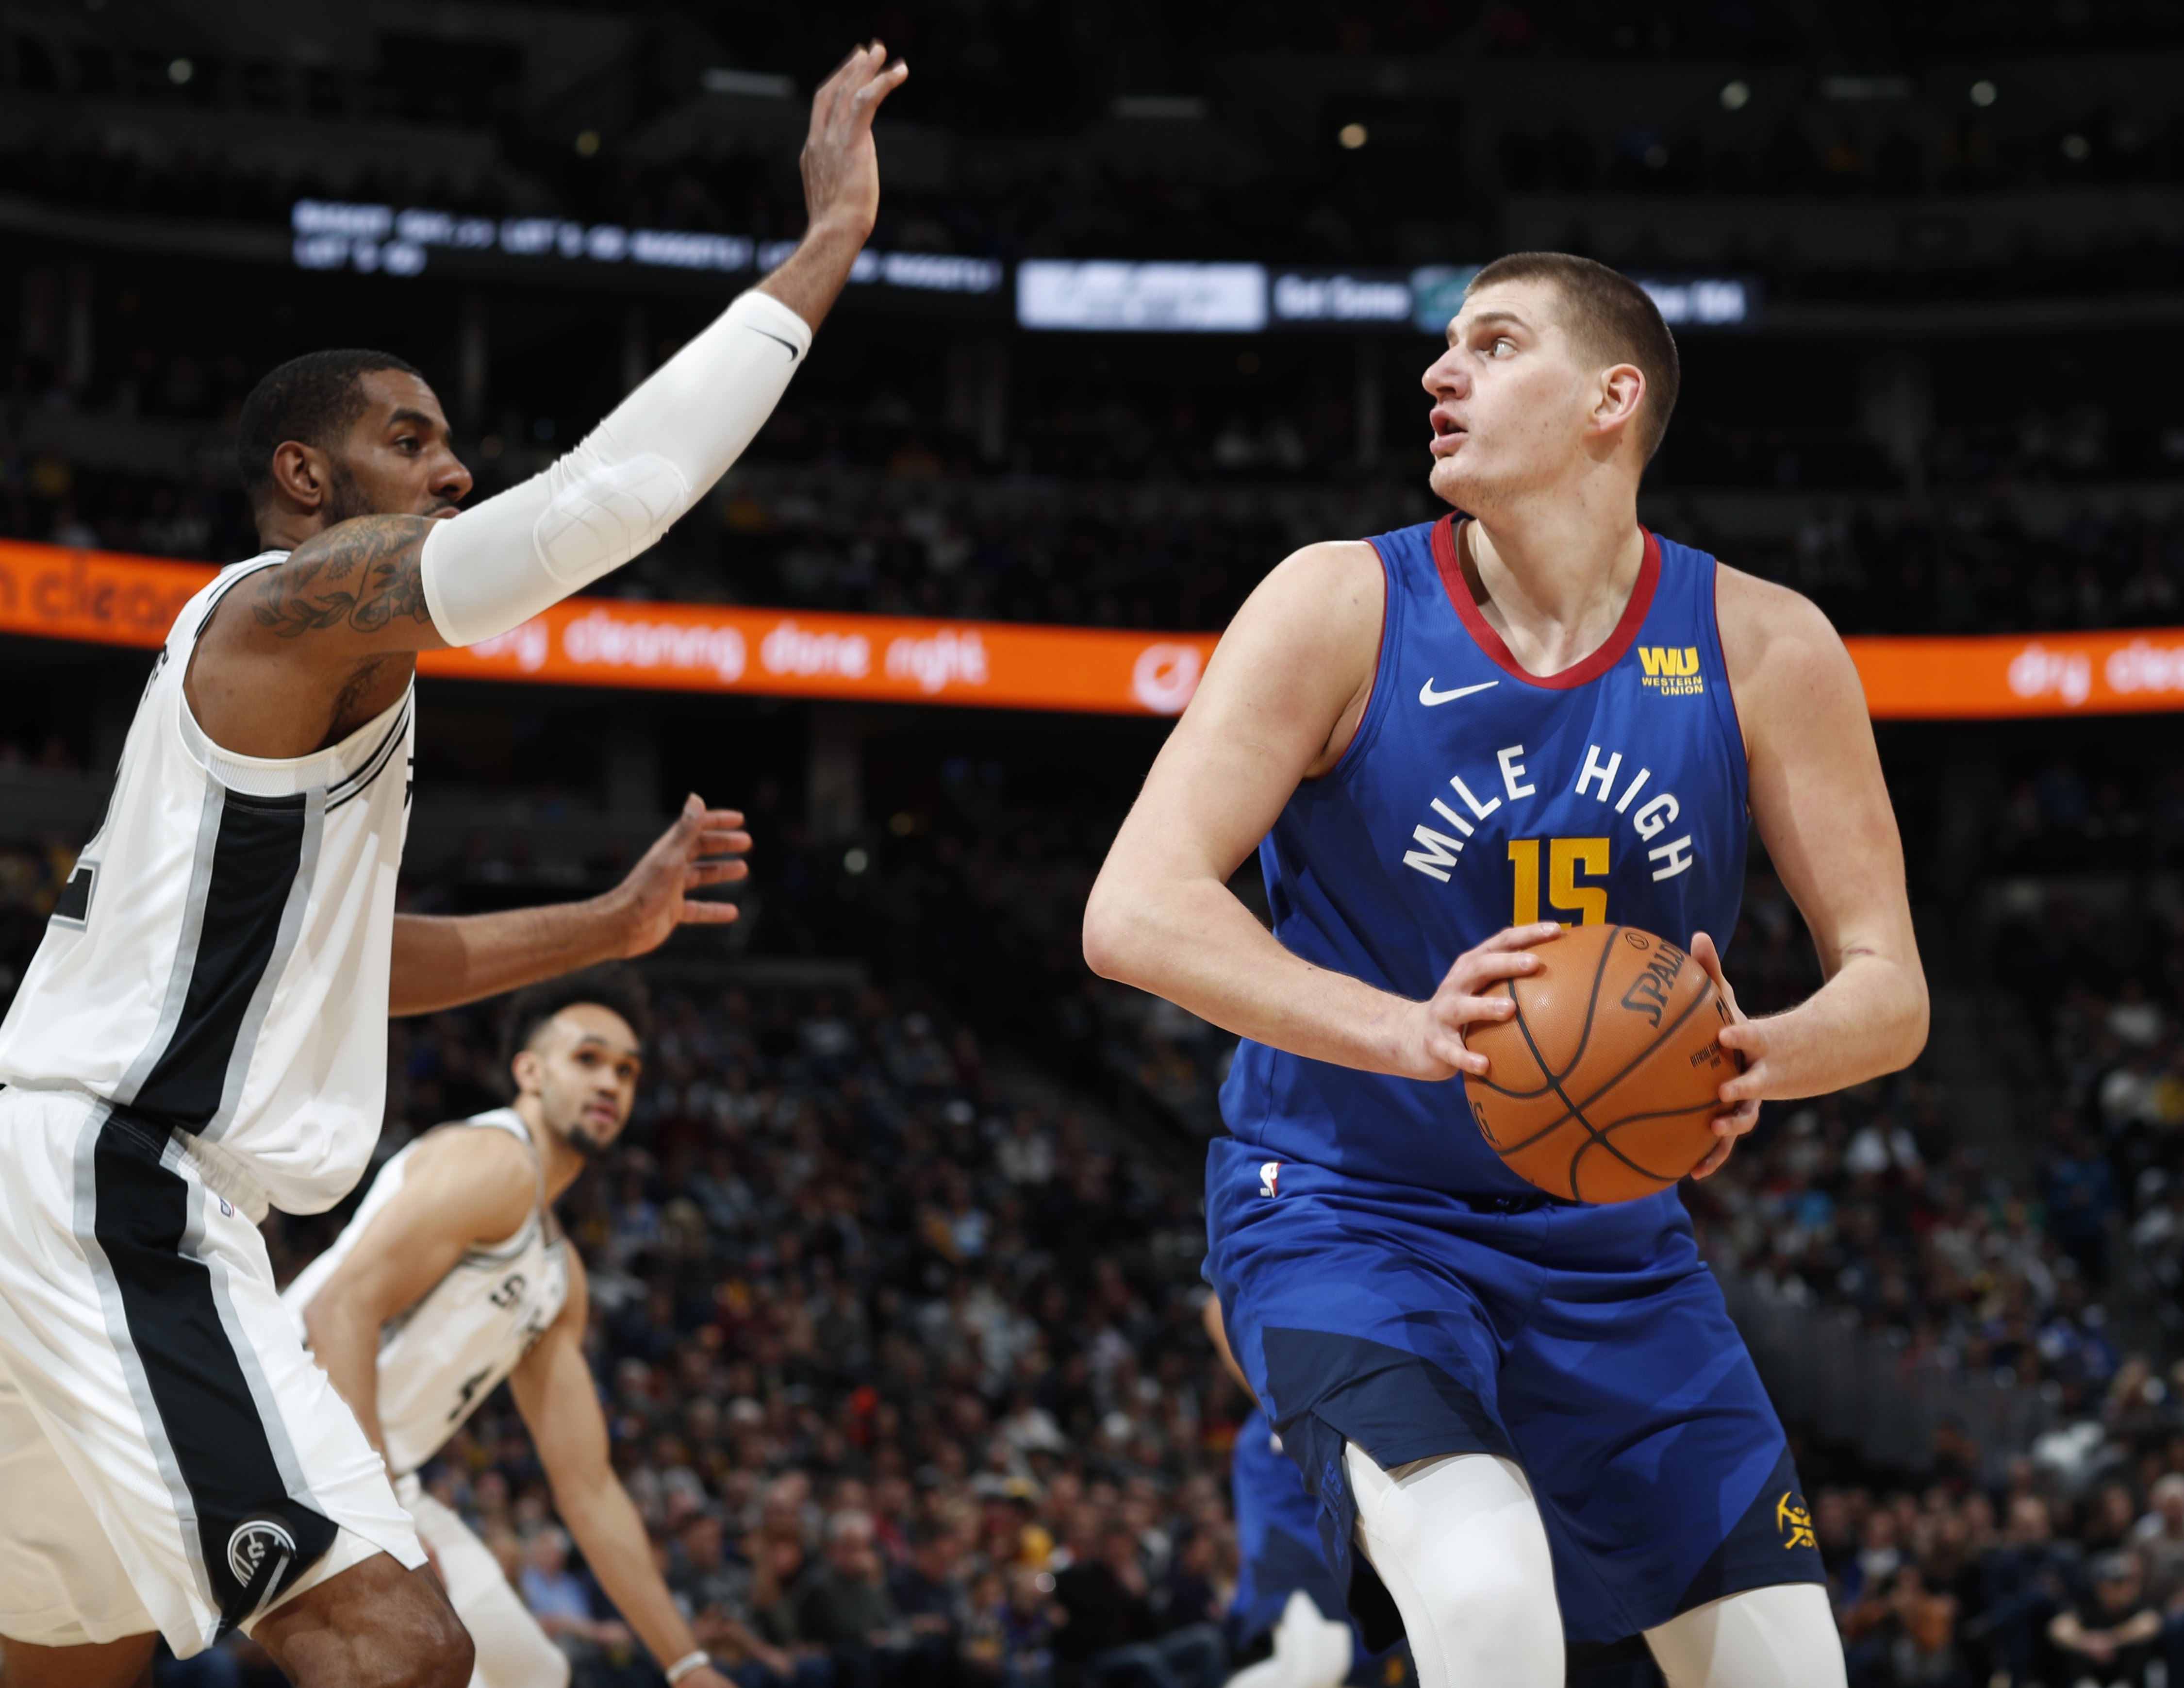 detailing 1352e abdeb Nuggets keep rolling at home, hold off Spurs 102-99 ...